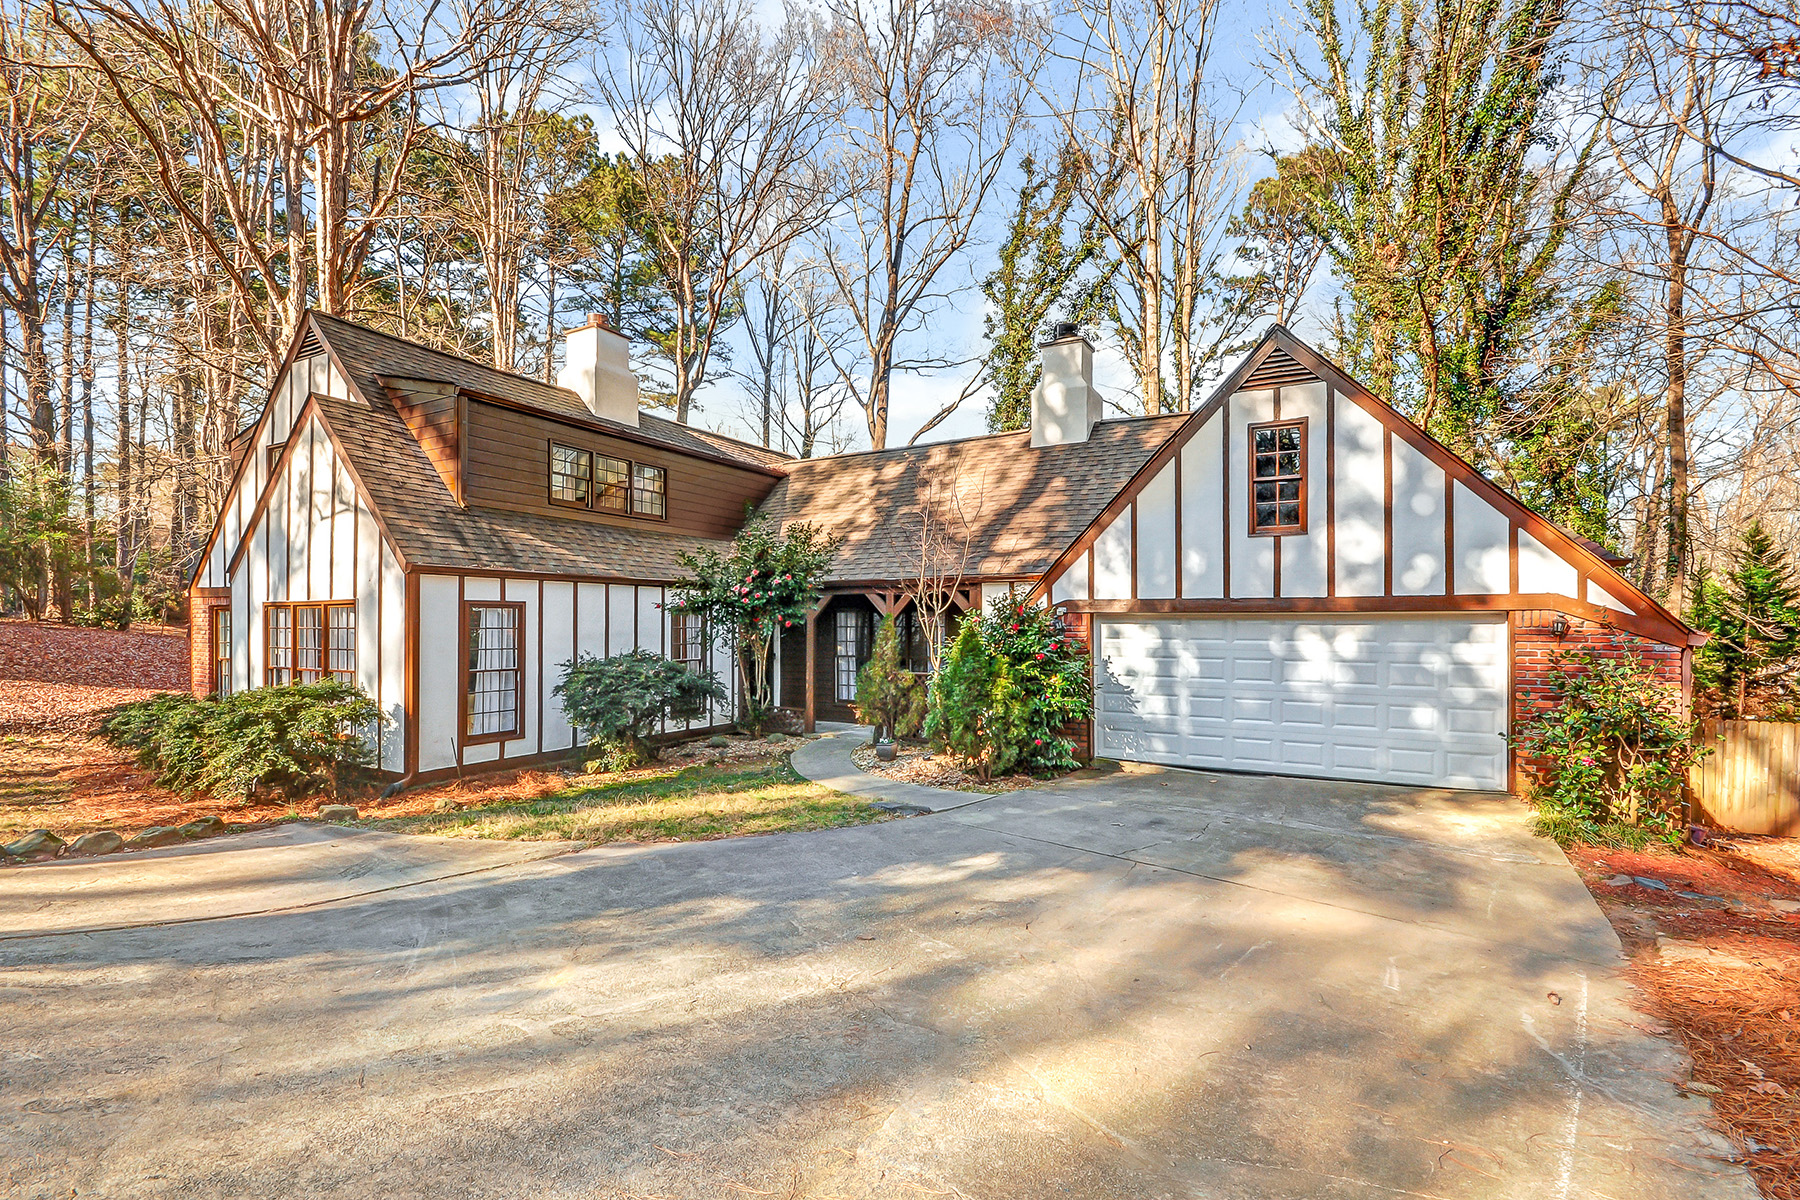 Single Family Home for Sale at Charming, Sun-filled European Tudor Style Home Nestled in Quiet Cul-de-sac 3601 Miller Farms Lane Duluth, Georgia 30096 United States